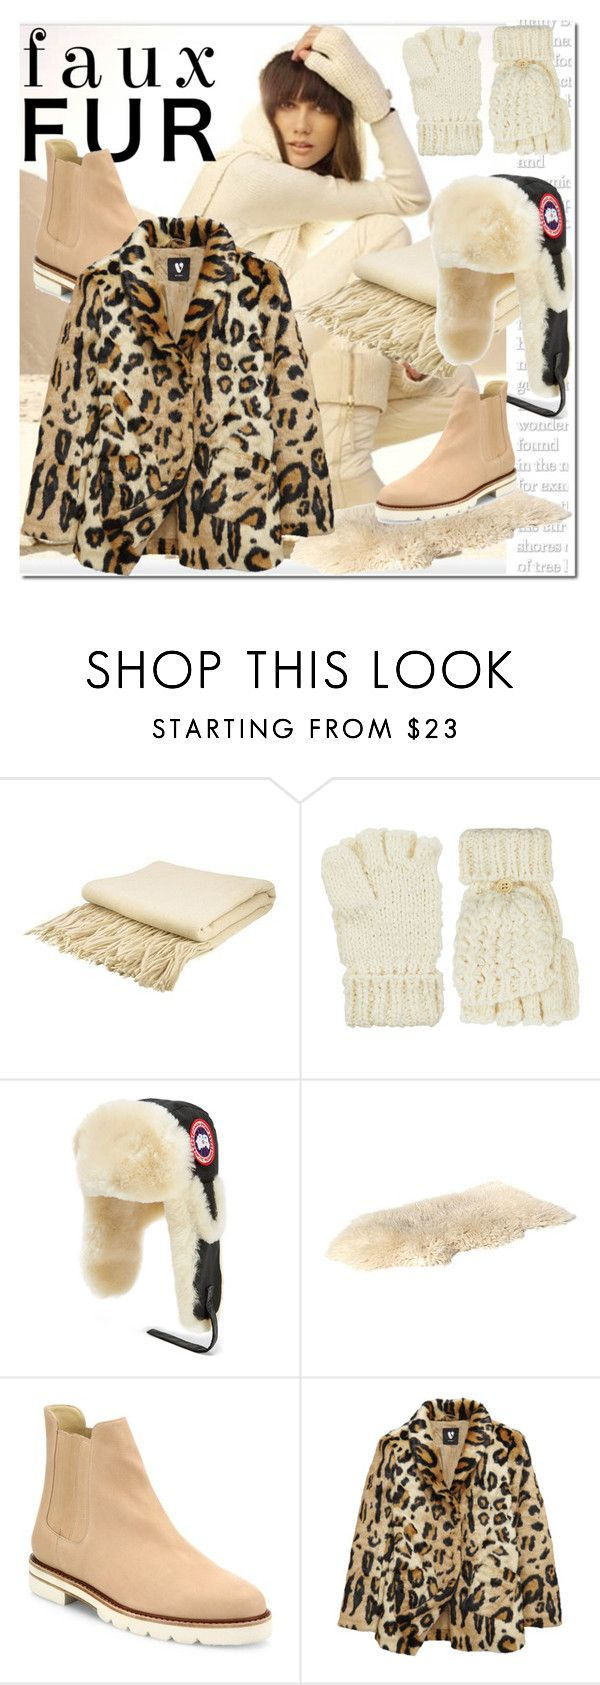 """Faux Fur Coats"" by ilona-828 ❤ liked on Polyvore featuring Home Decorators Collection, Accessorize, Canada Goose, Stuart Weitzman, polyvoreeditorial and fauxfurcoats"